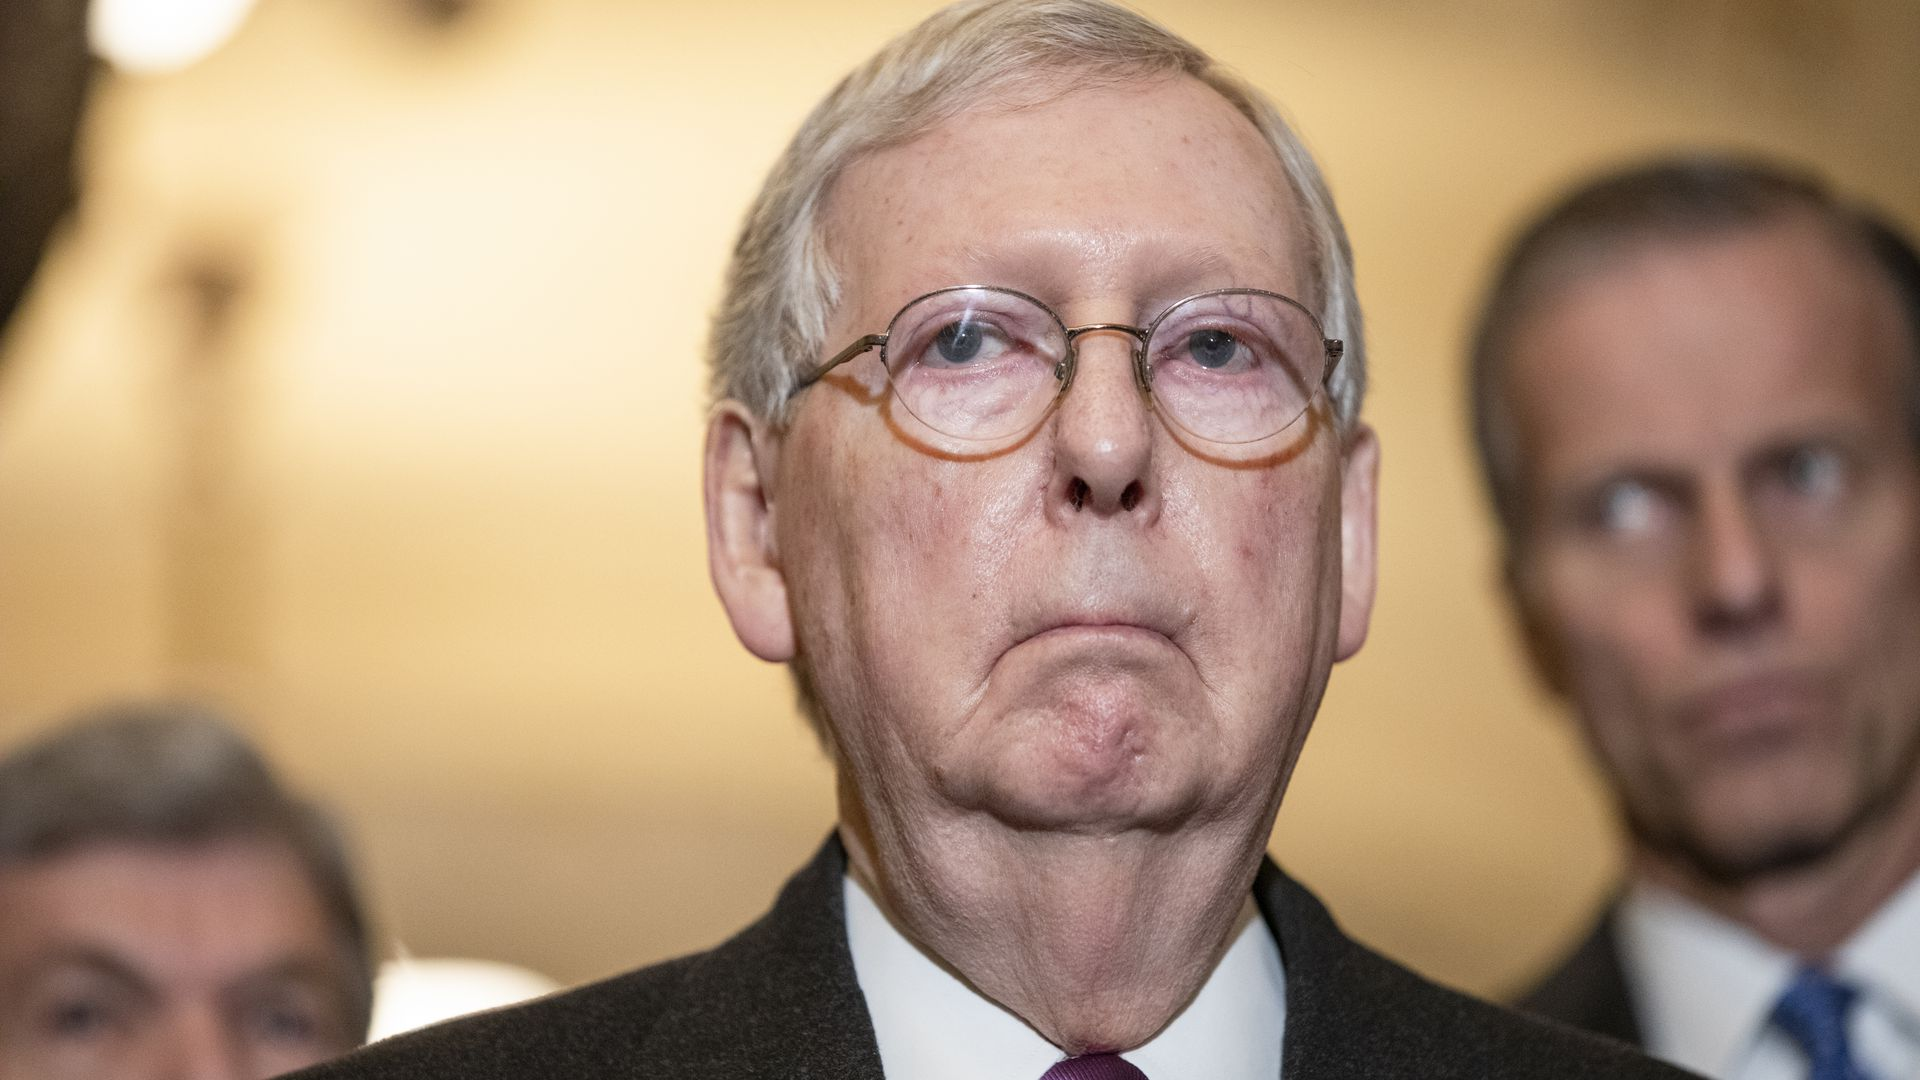 Photo of Mitch McConnell, Senate majority leader, pursing his lips